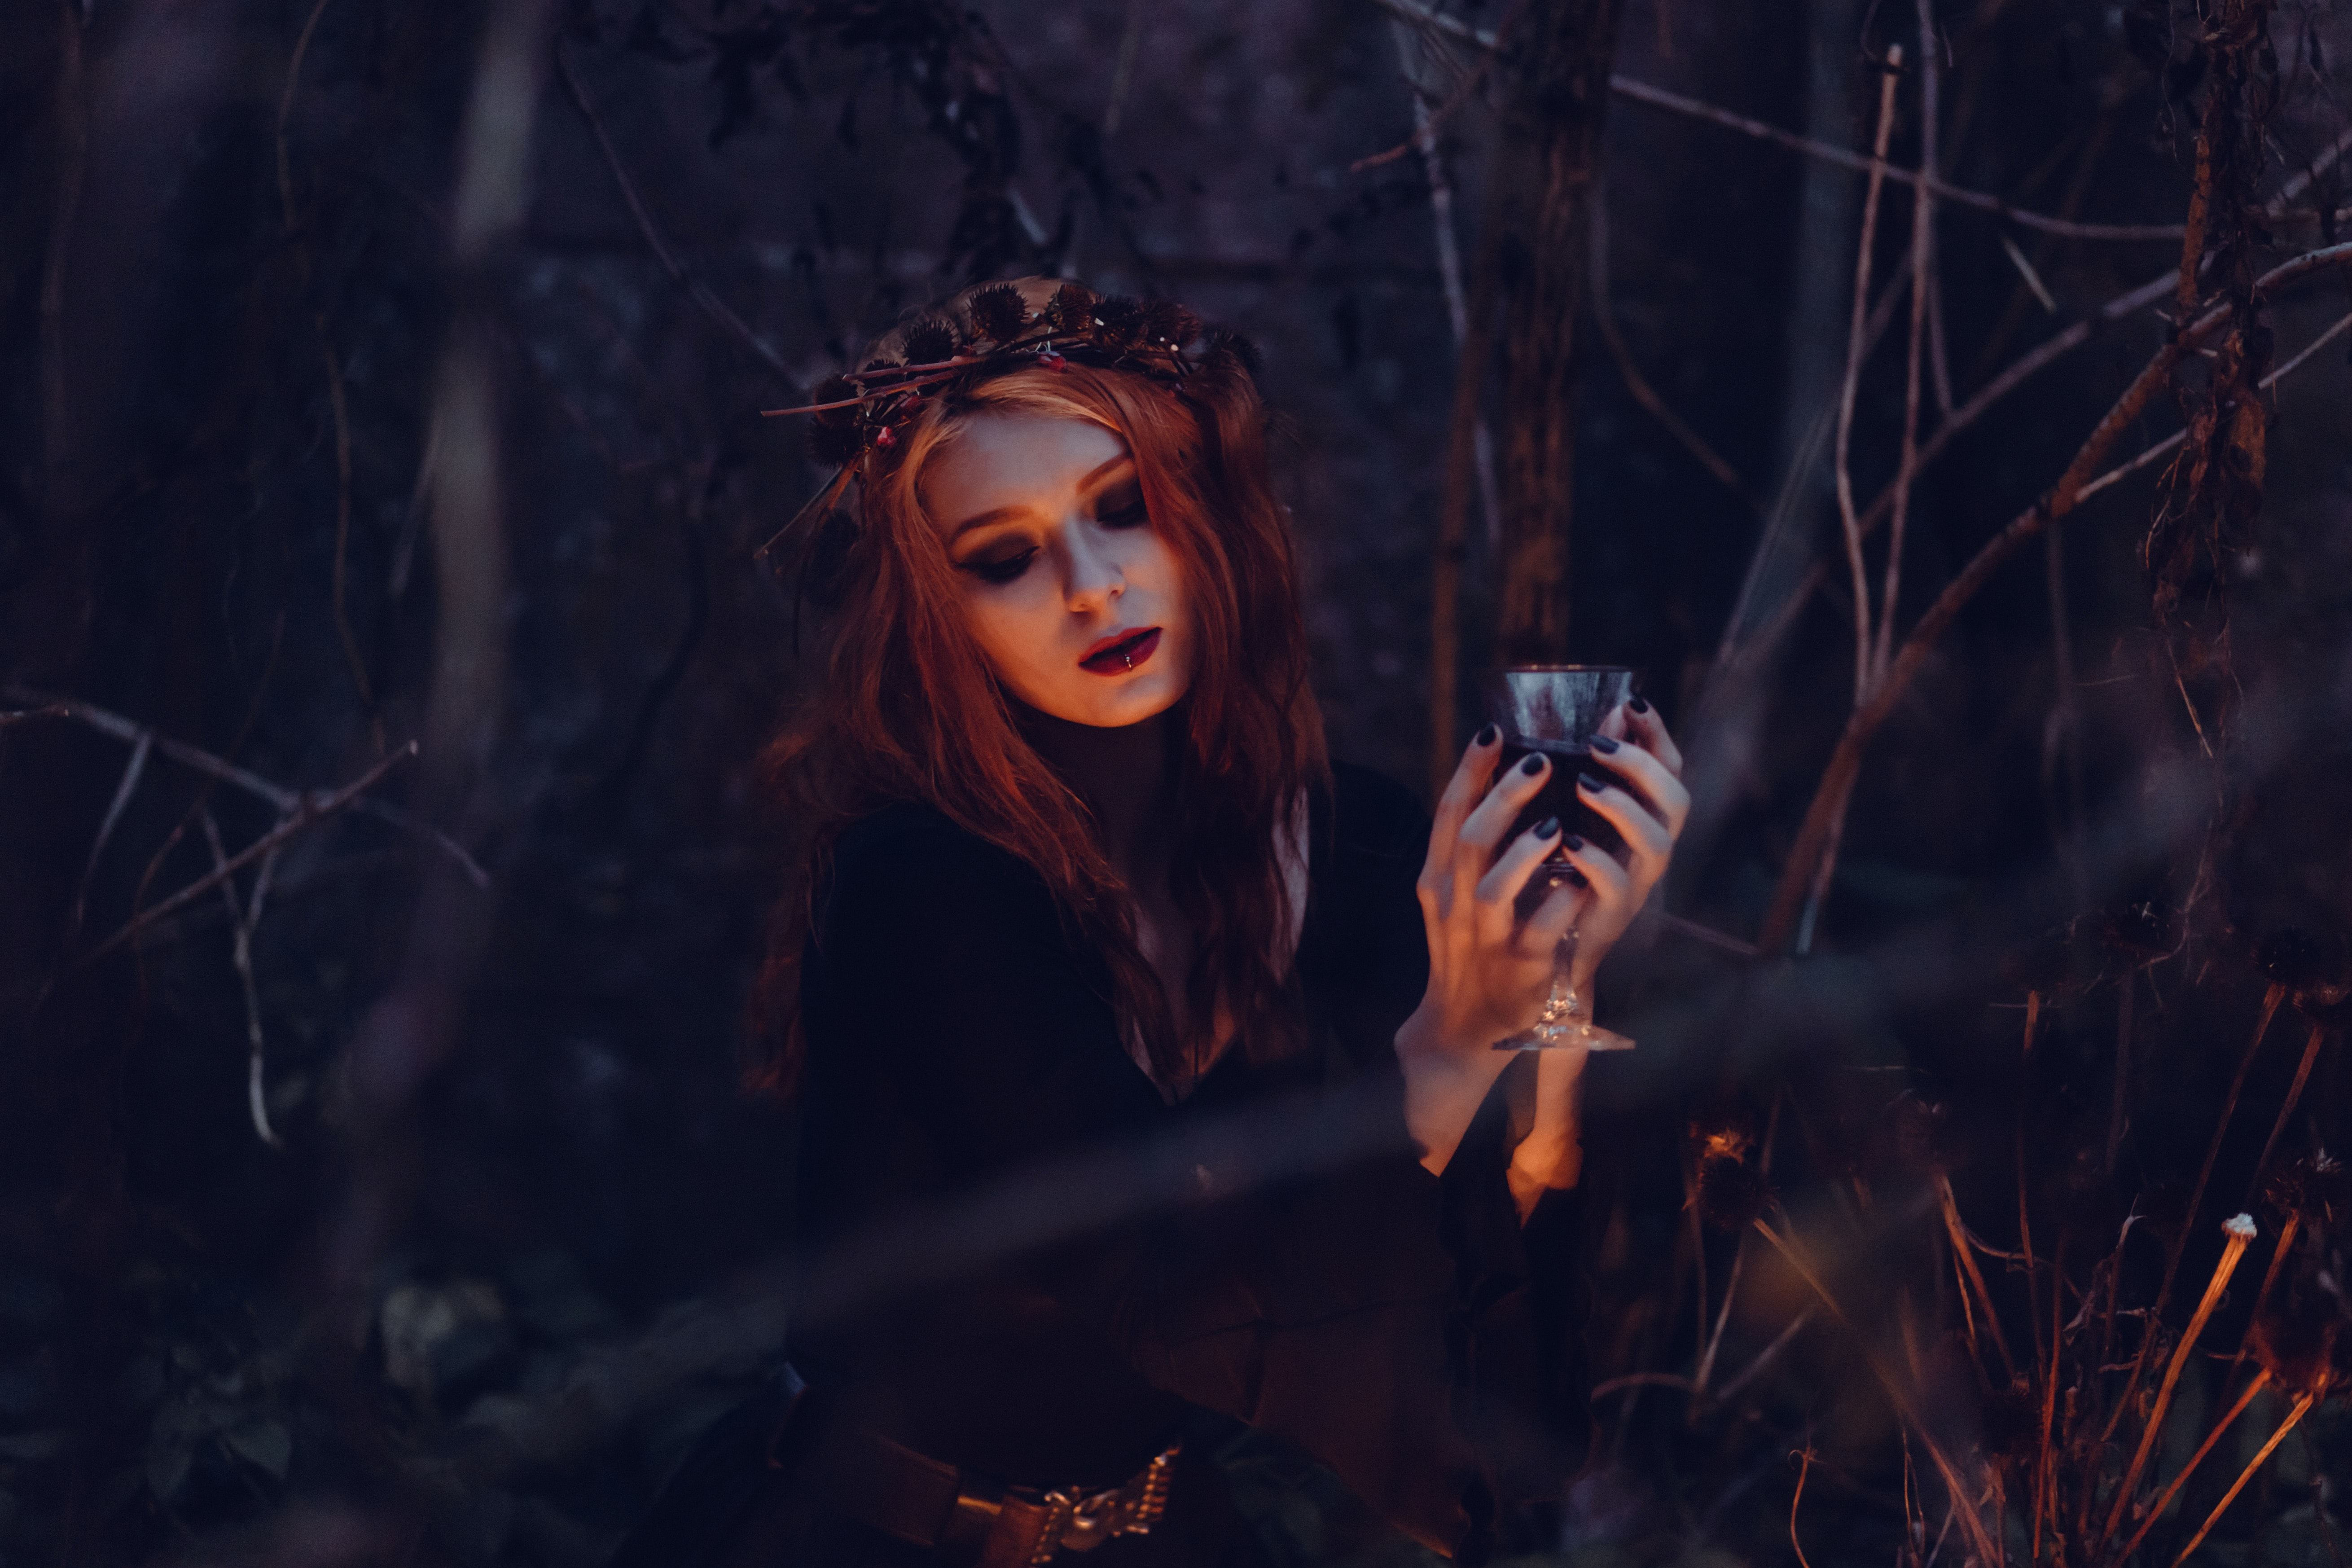 A girl in the woods holding a glass of wine on Halloween.